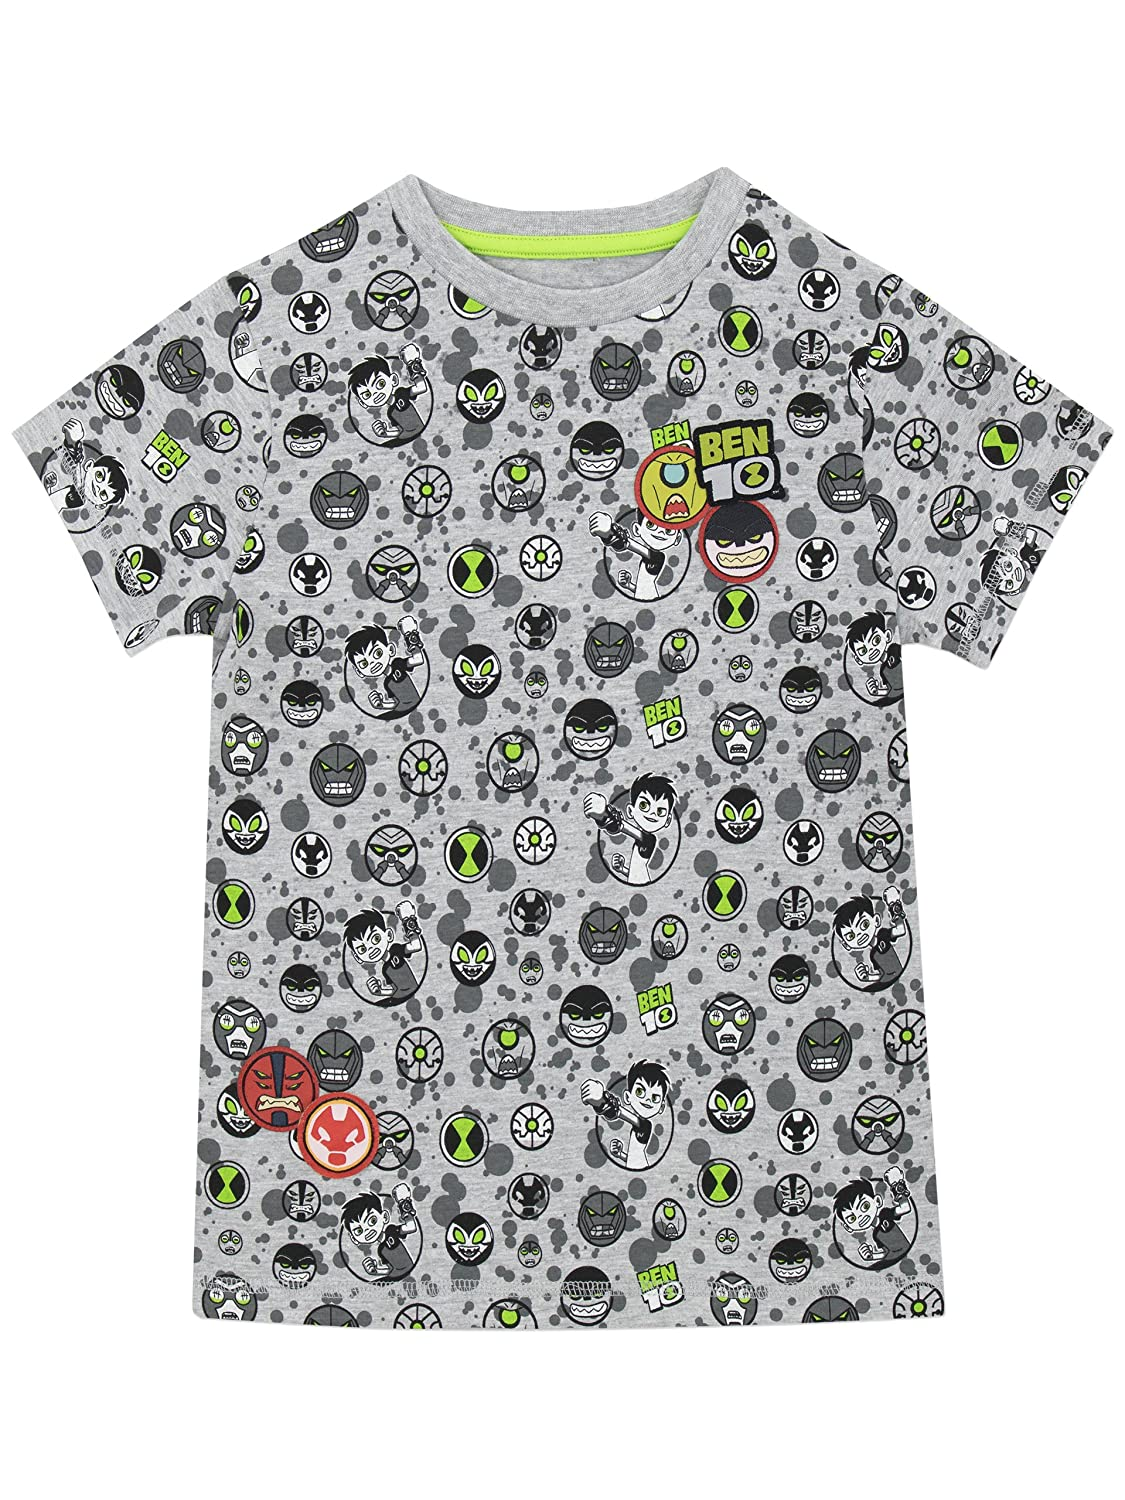 Ben 10 Boys T-Shirt Ages 4 to 12 Years